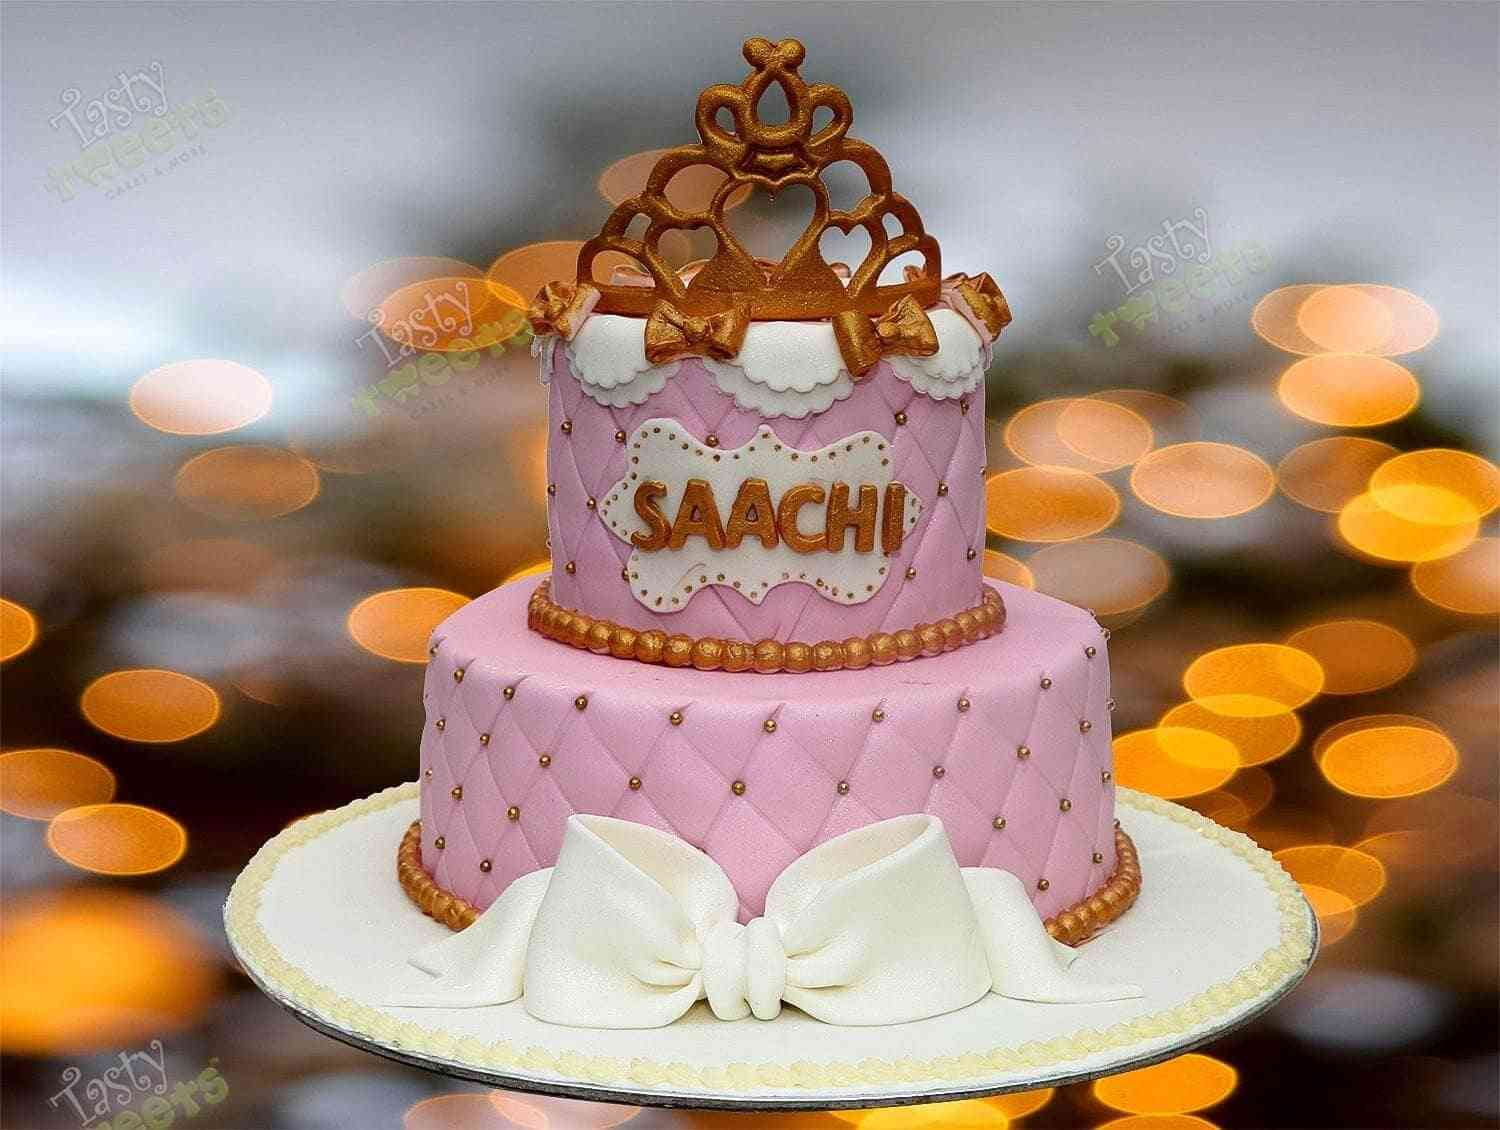 Marvelous Order Cakes Online In Gurgaon Cake Order In Gurgaon Personalised Birthday Cards Veneteletsinfo